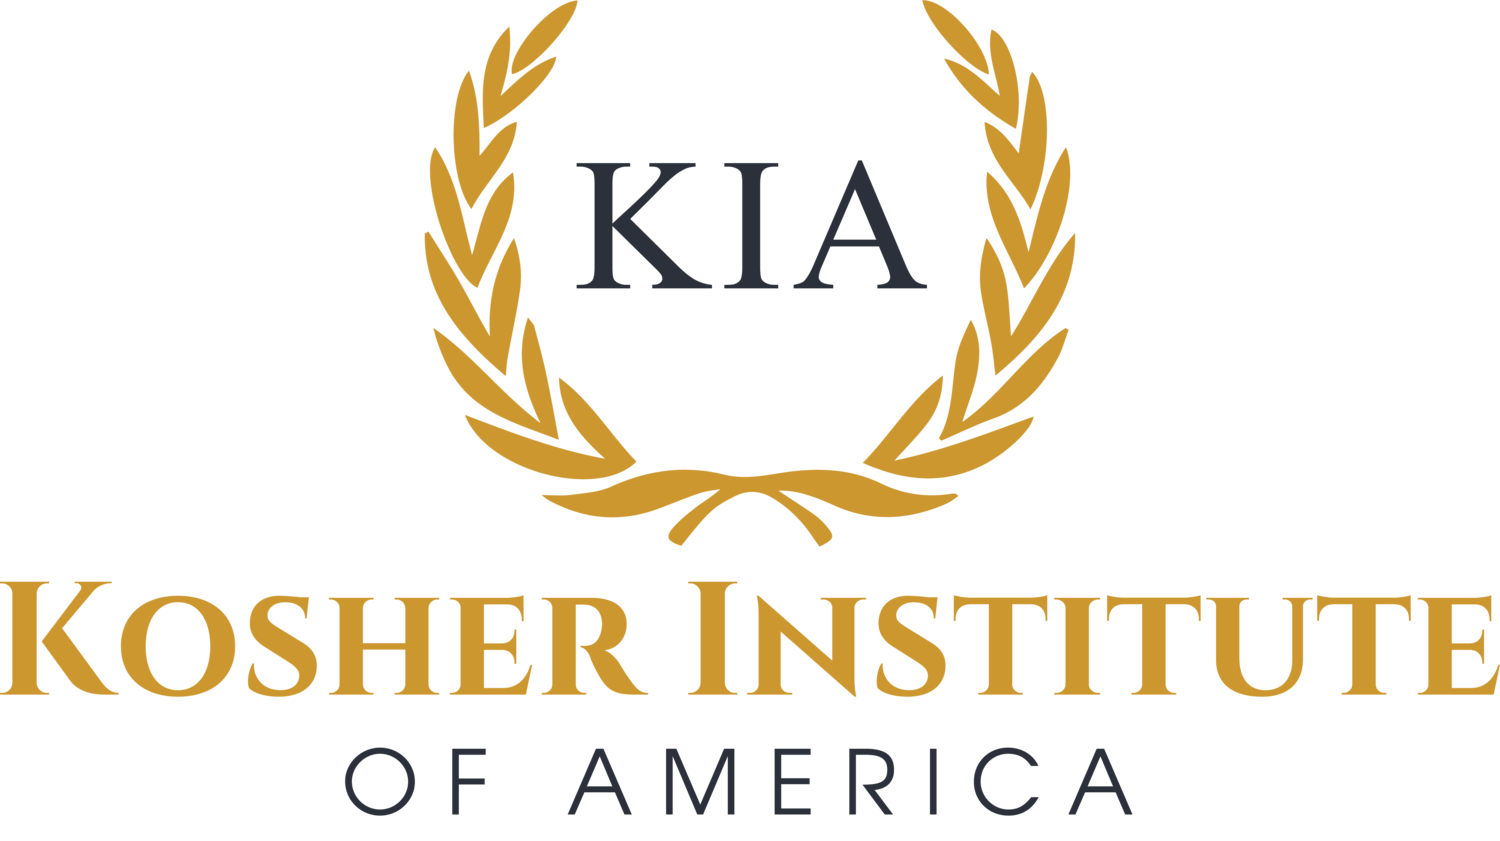 Kosher Institute of America